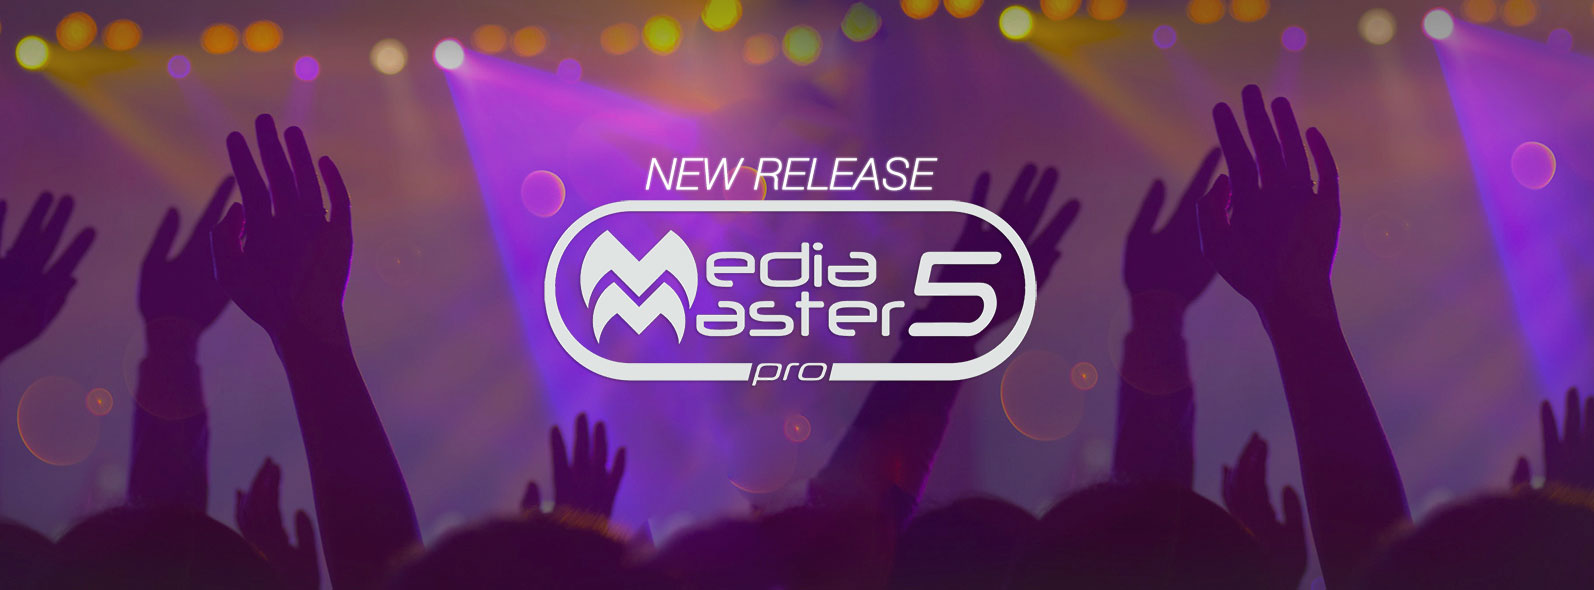 background banner new release mediamaster express pro 5.4